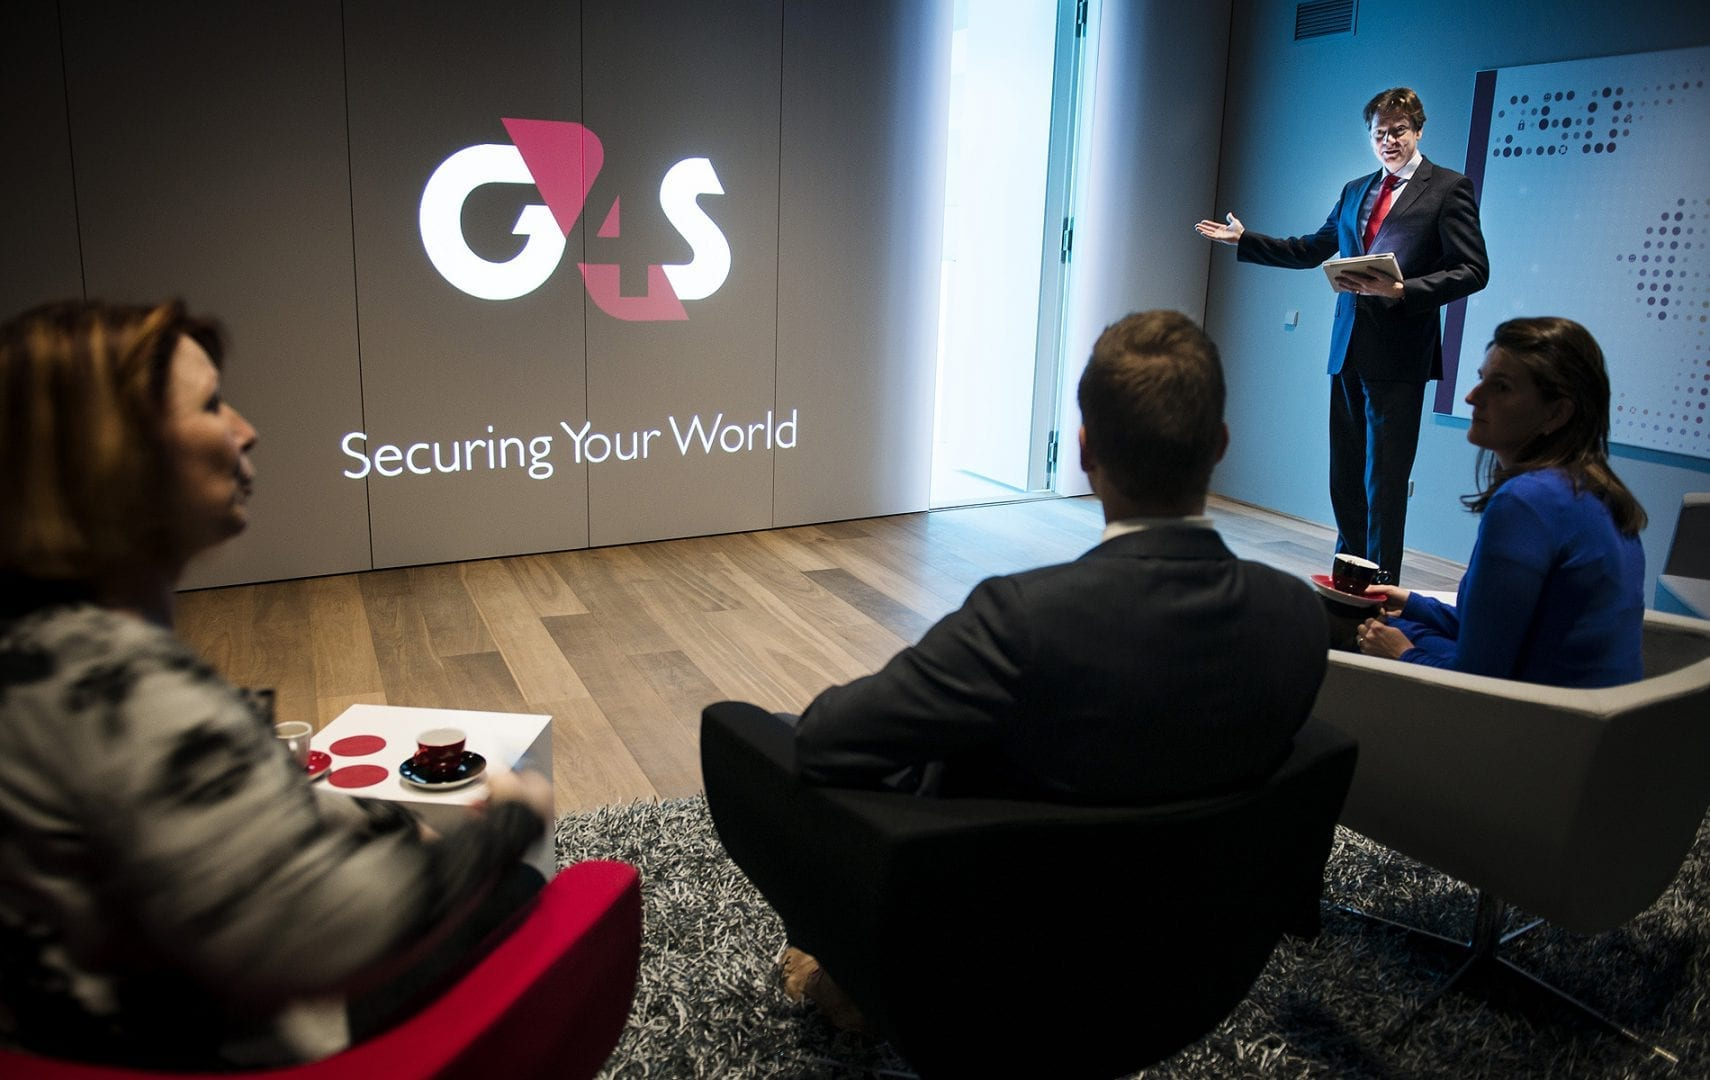 G4S innovation centre